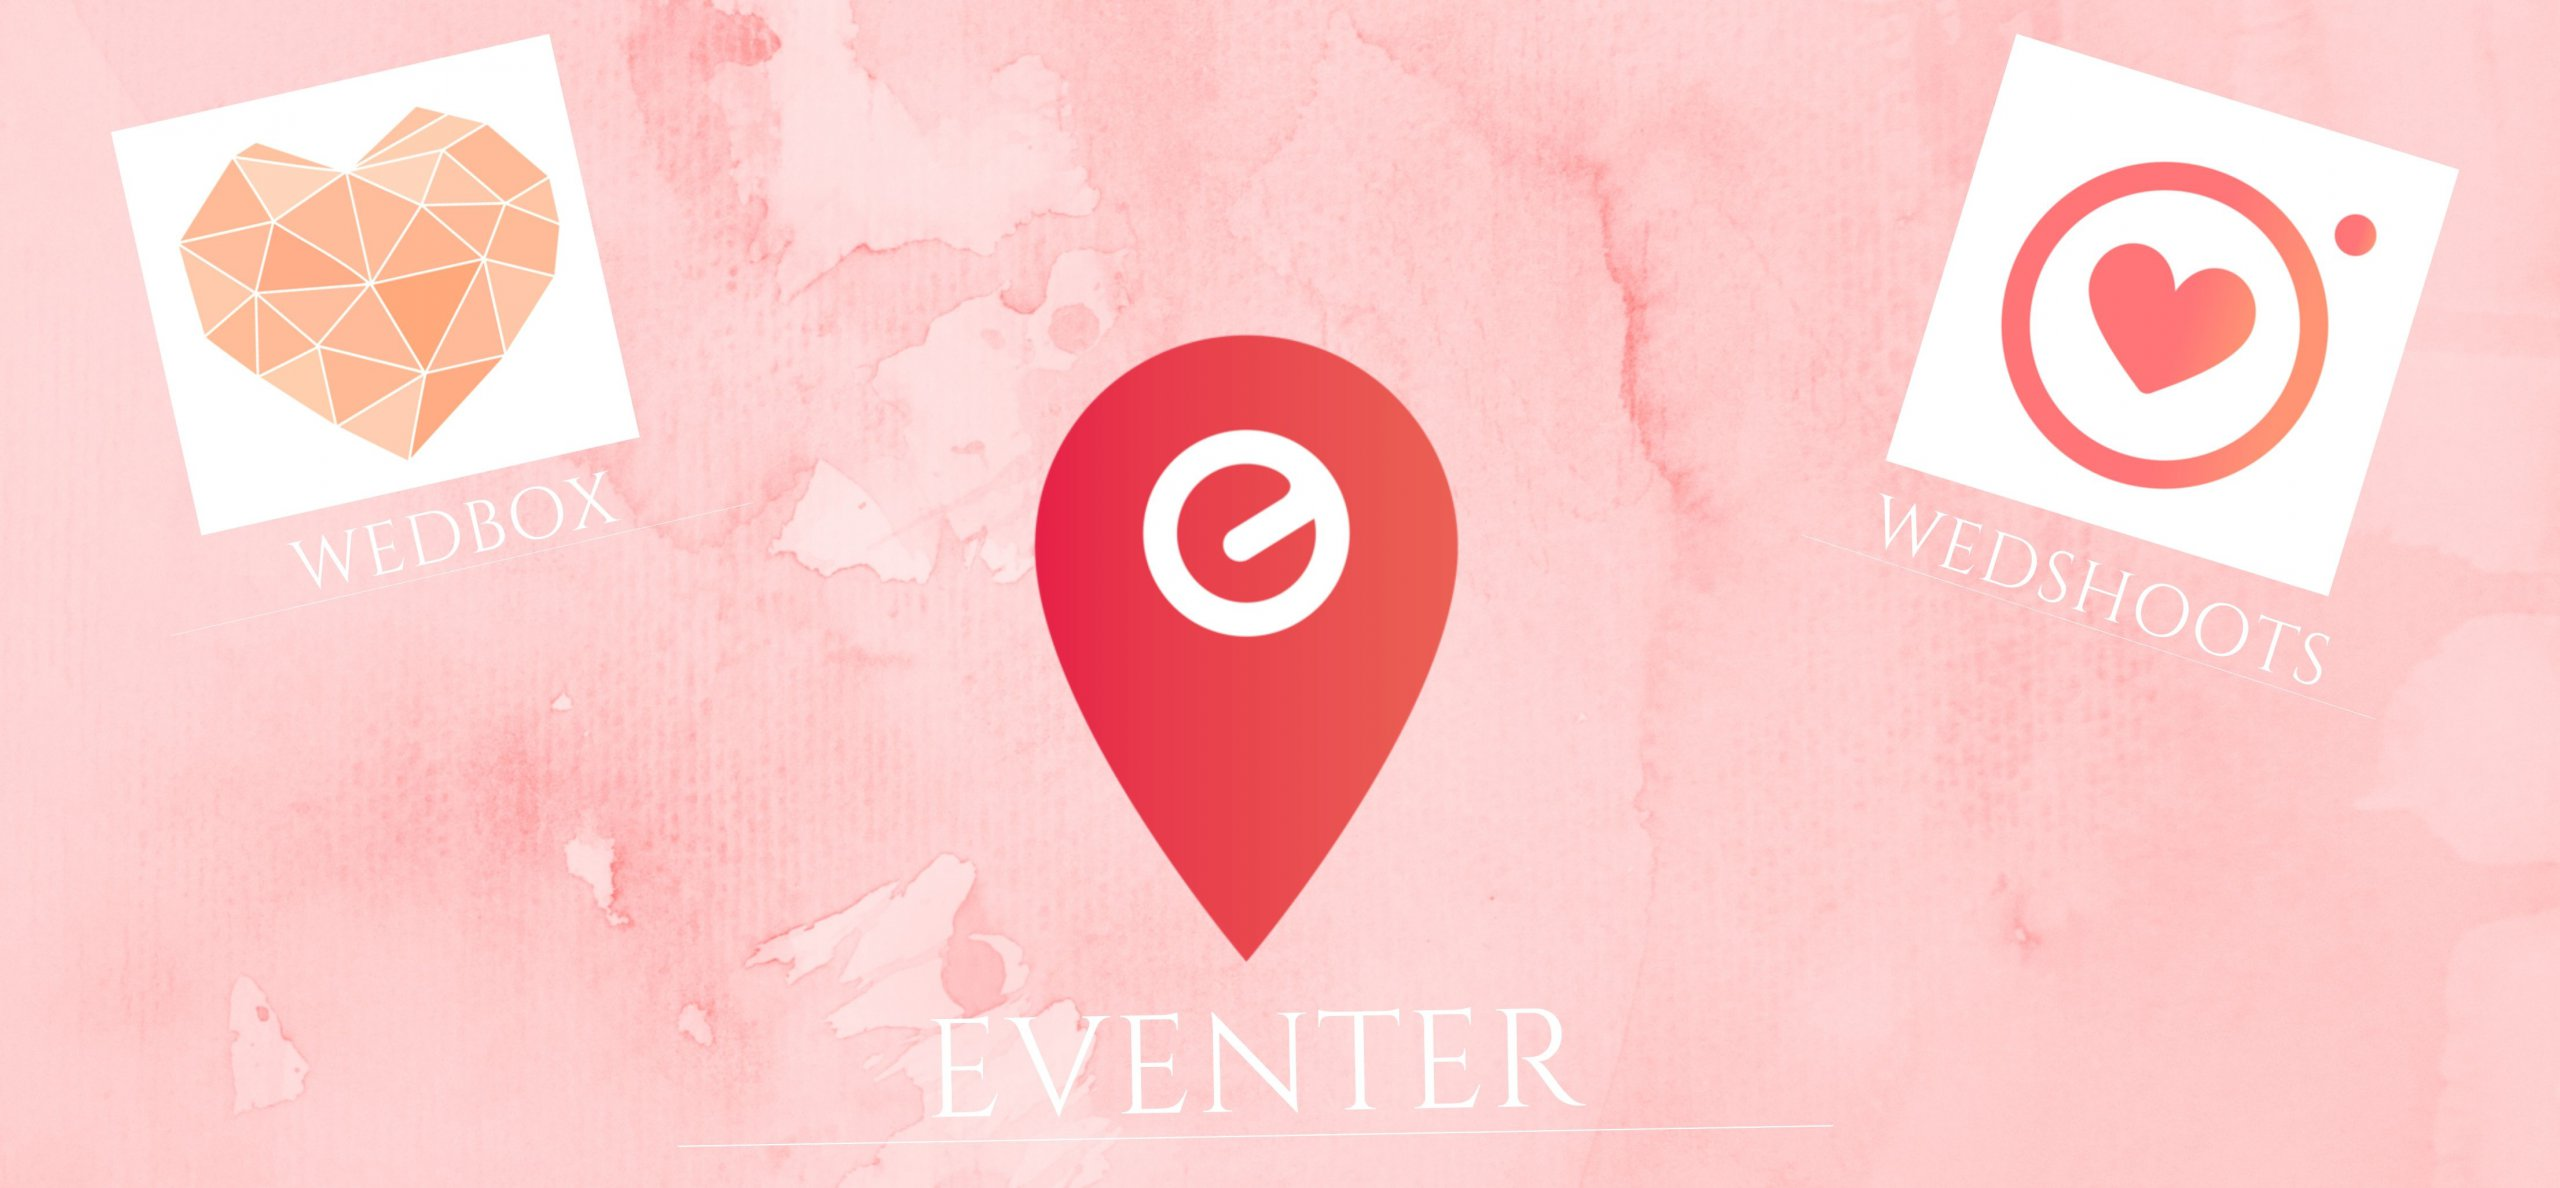 banner-eventer-vs-other-wedding-photo-app